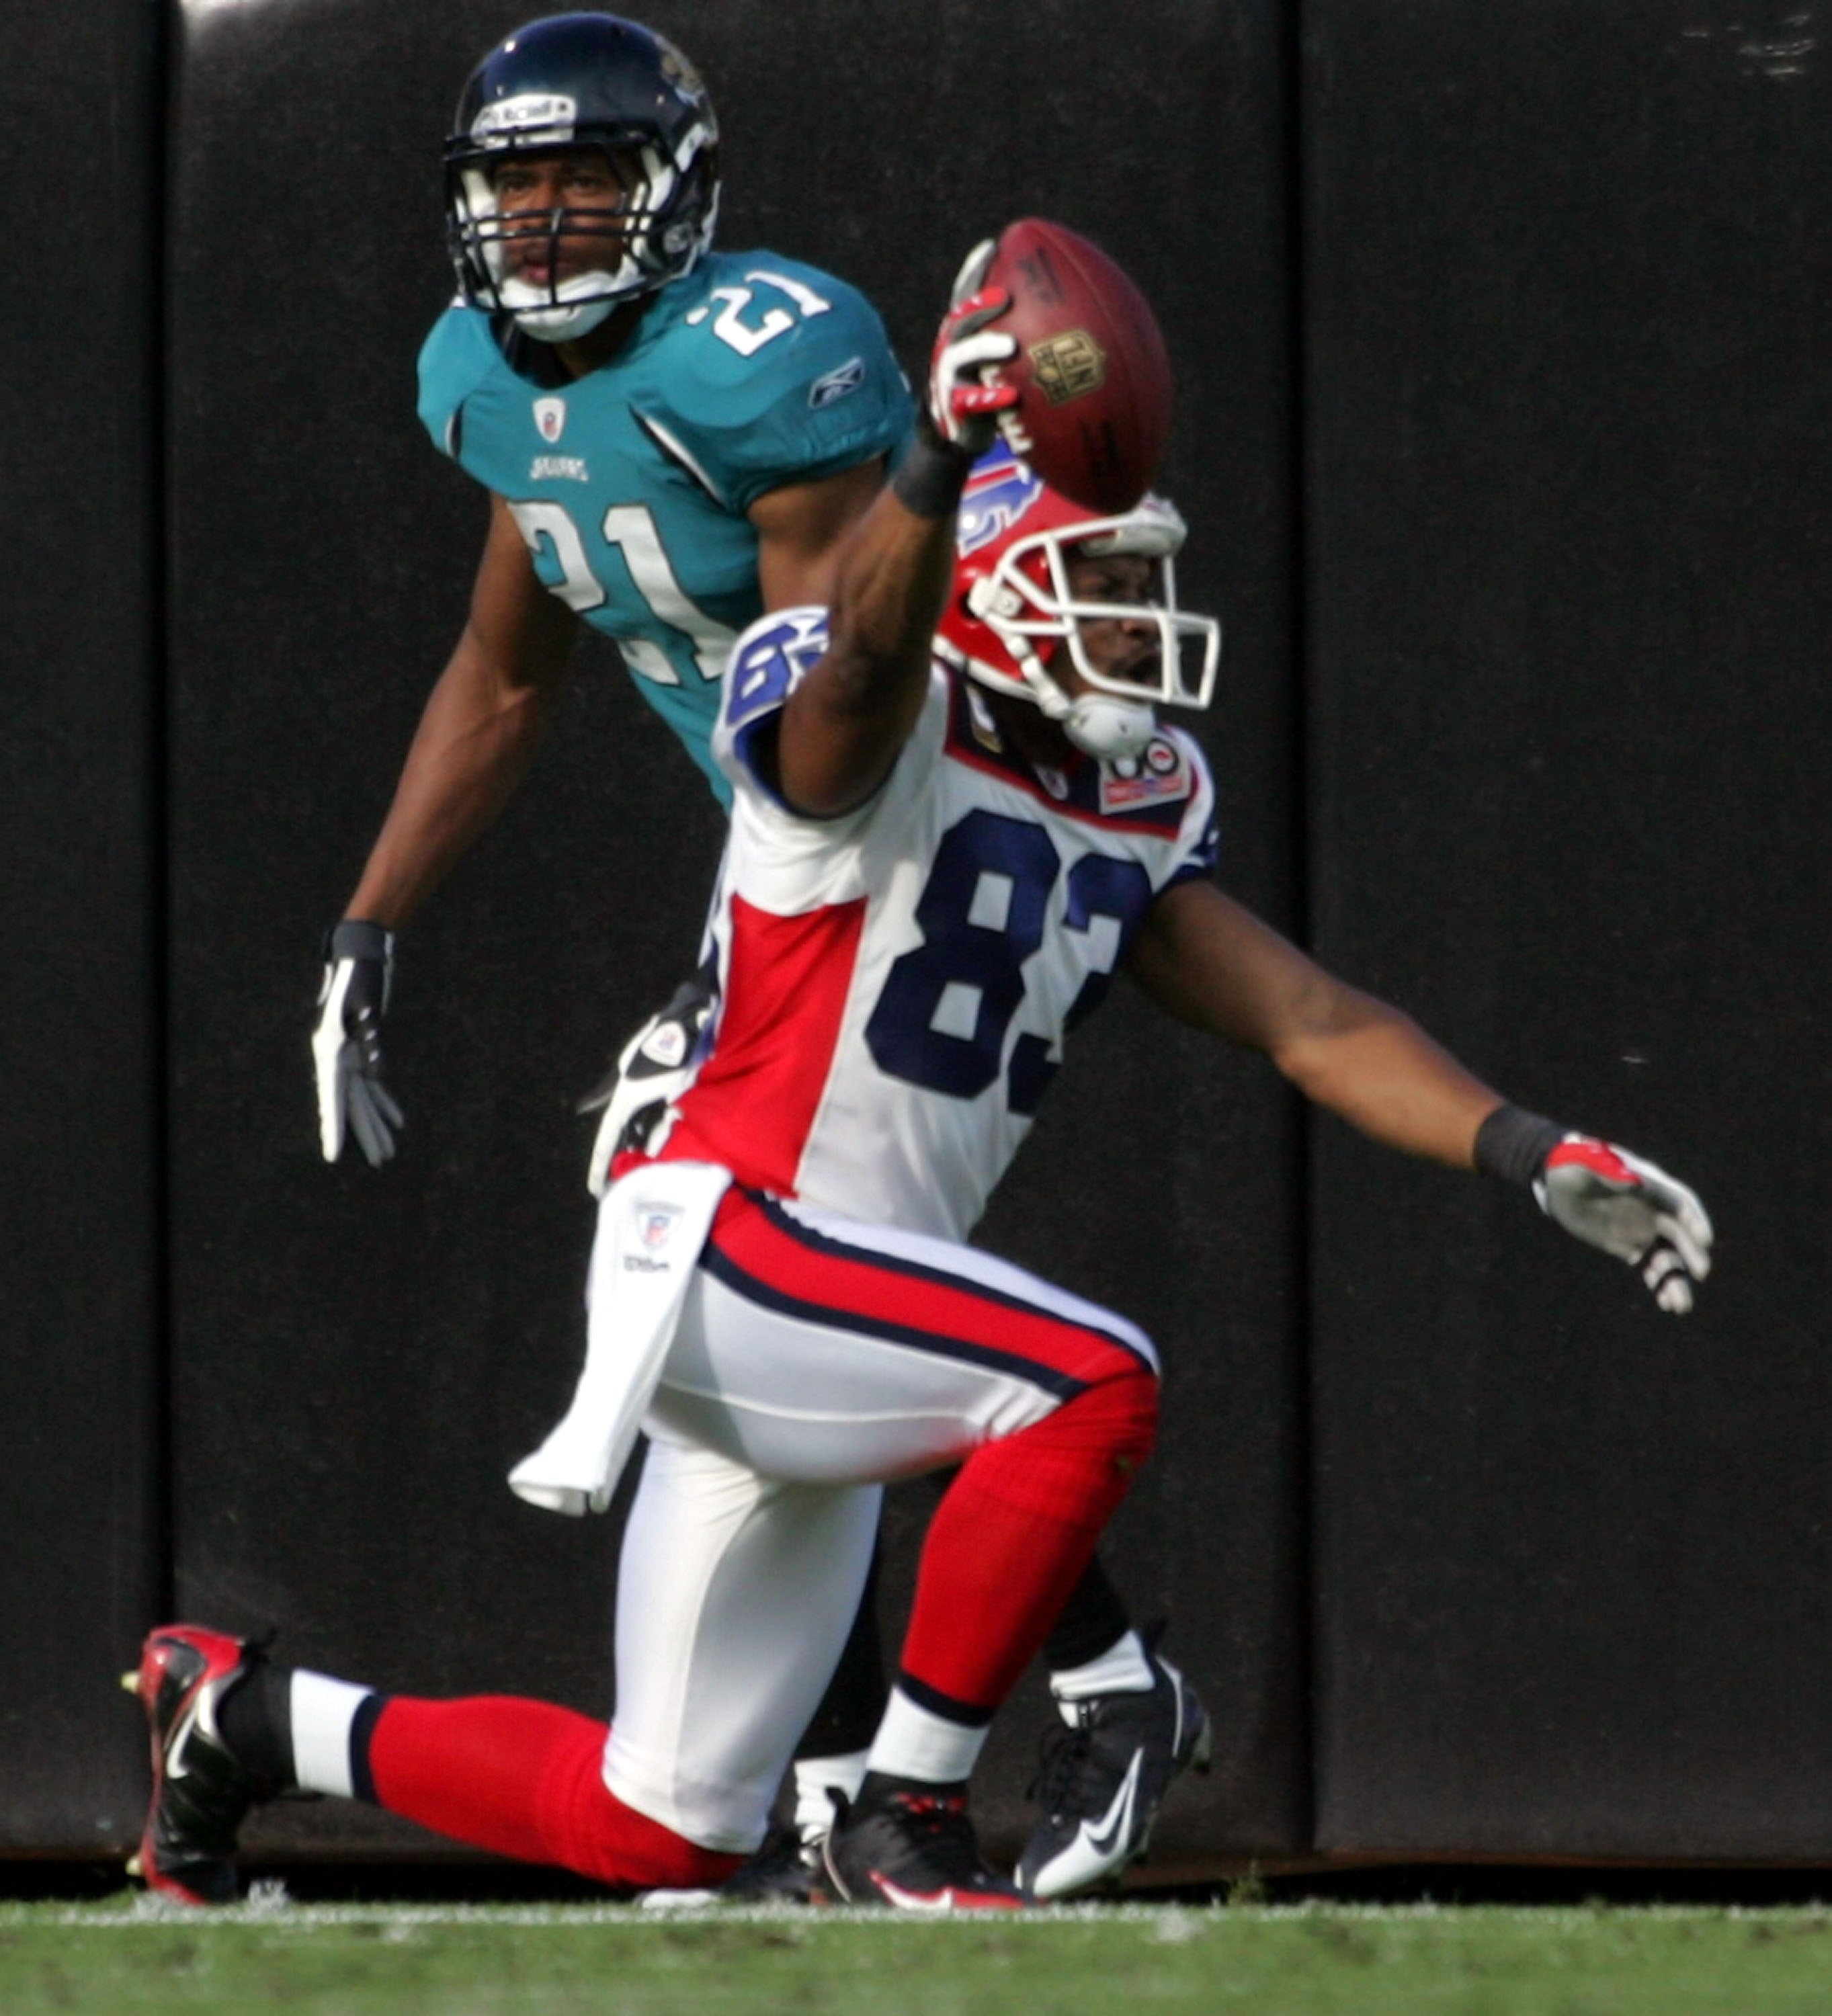 JACKSONVILLE, FL - NOVEMBER 22:  Reciever Lee Evans #83 of the Buffalo Bills celebrates a touchdown against the Jacksonville Jaguars at Jacksonville Municipal Stadium on November 22, 2009 in Jacksonville, Florida.  (Photo by Marc Serota/Getty Images)